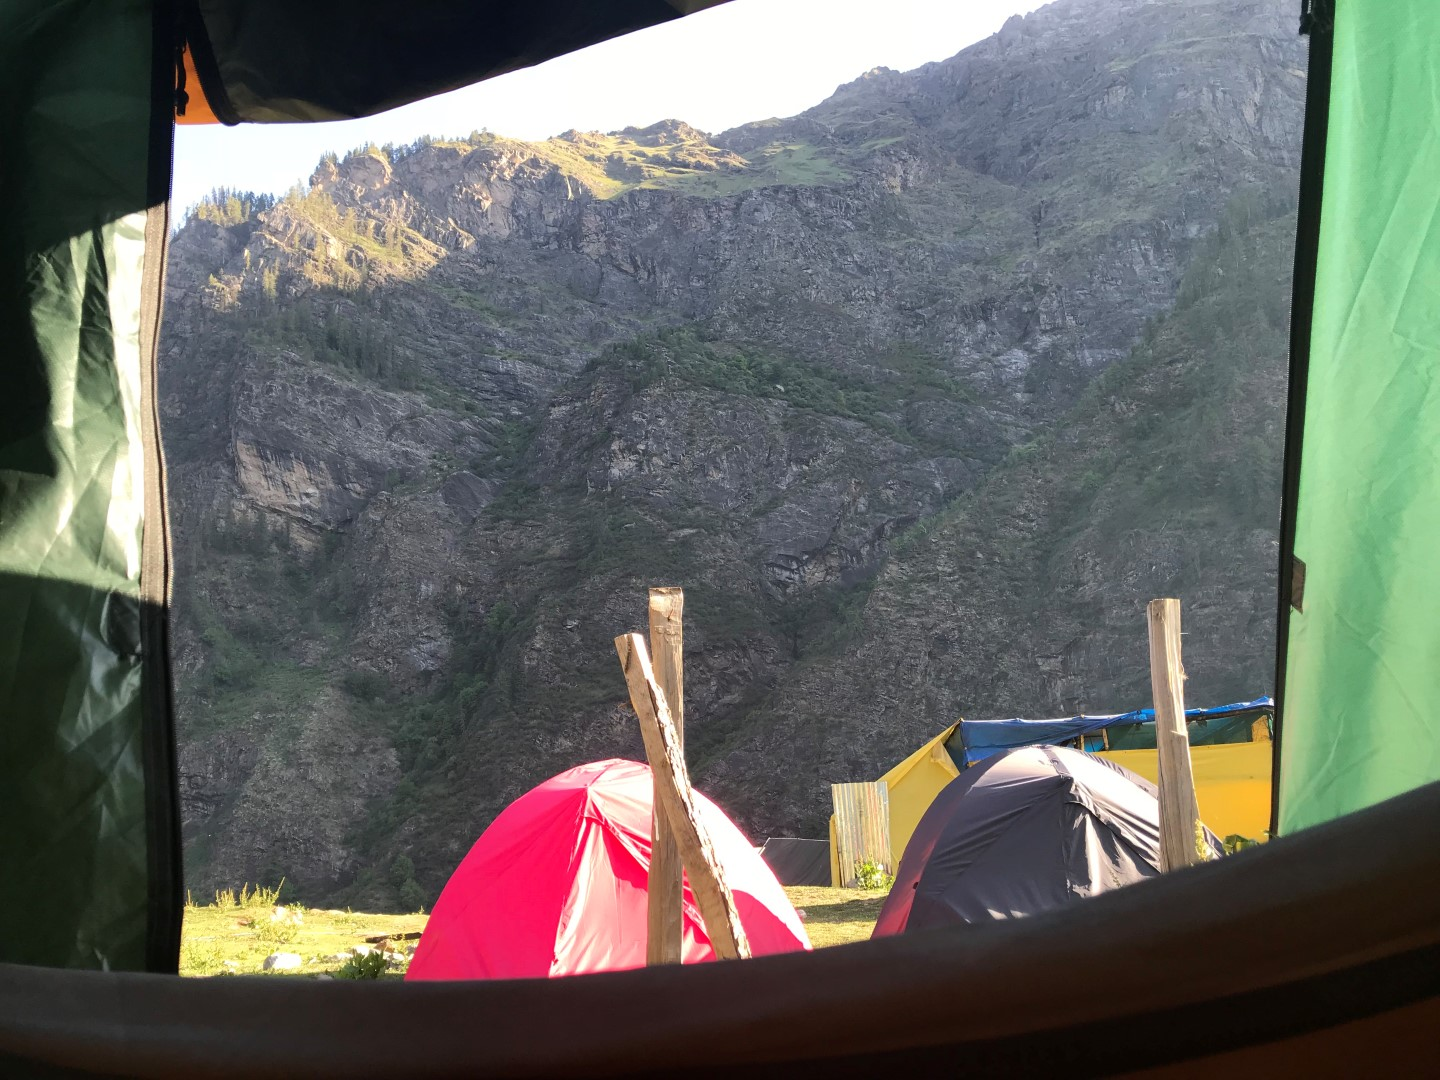 view of the mountains from our tent